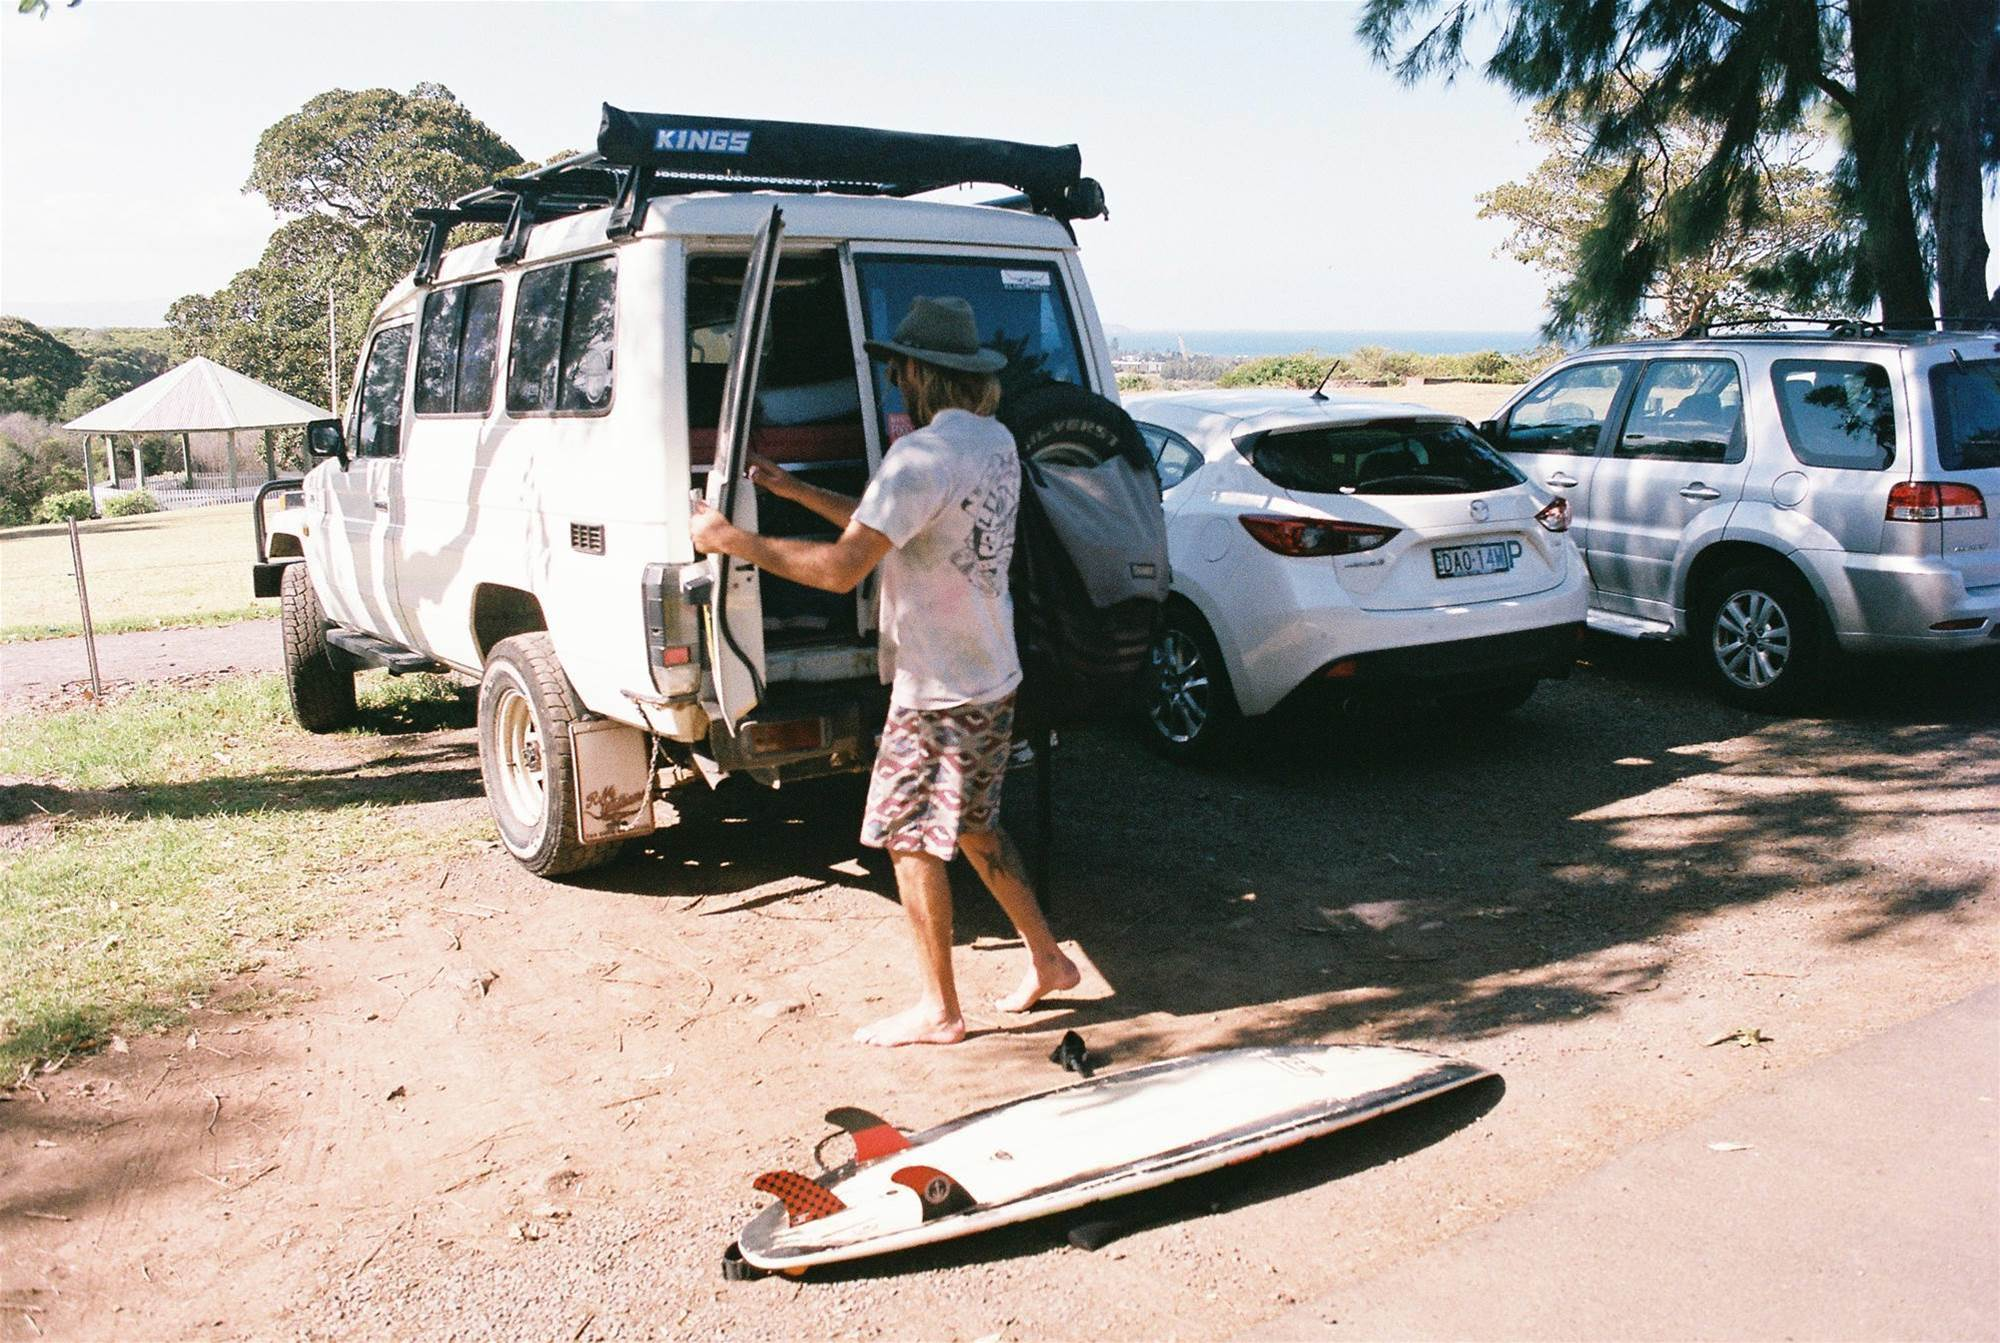 24 Hours For A Surf Trip